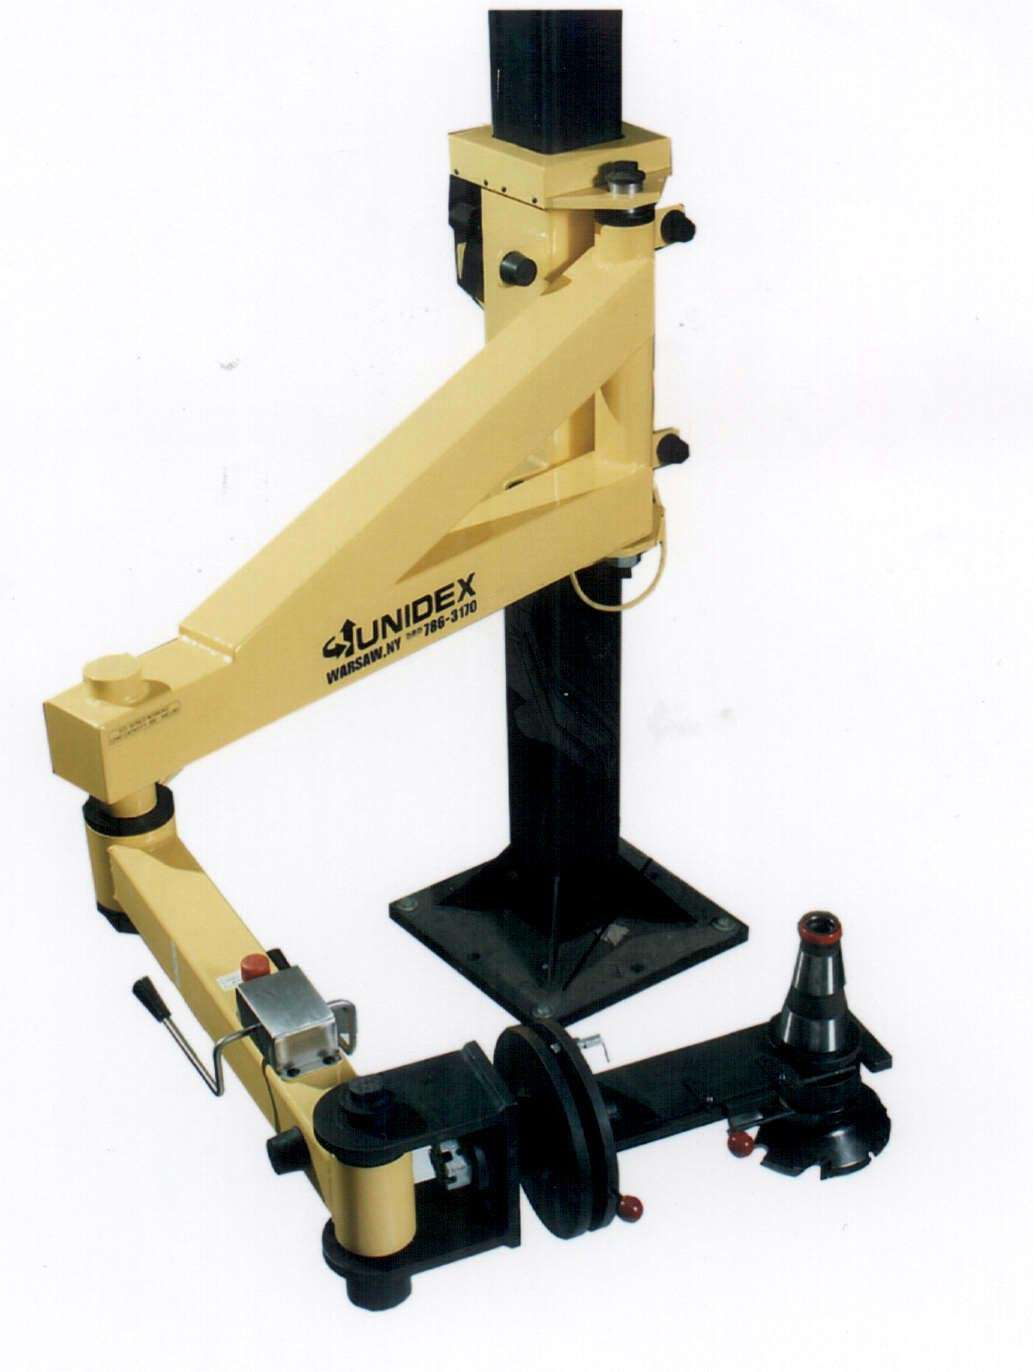 Articulating Arm Hoist : Unidex introduces new model ecl series electric column